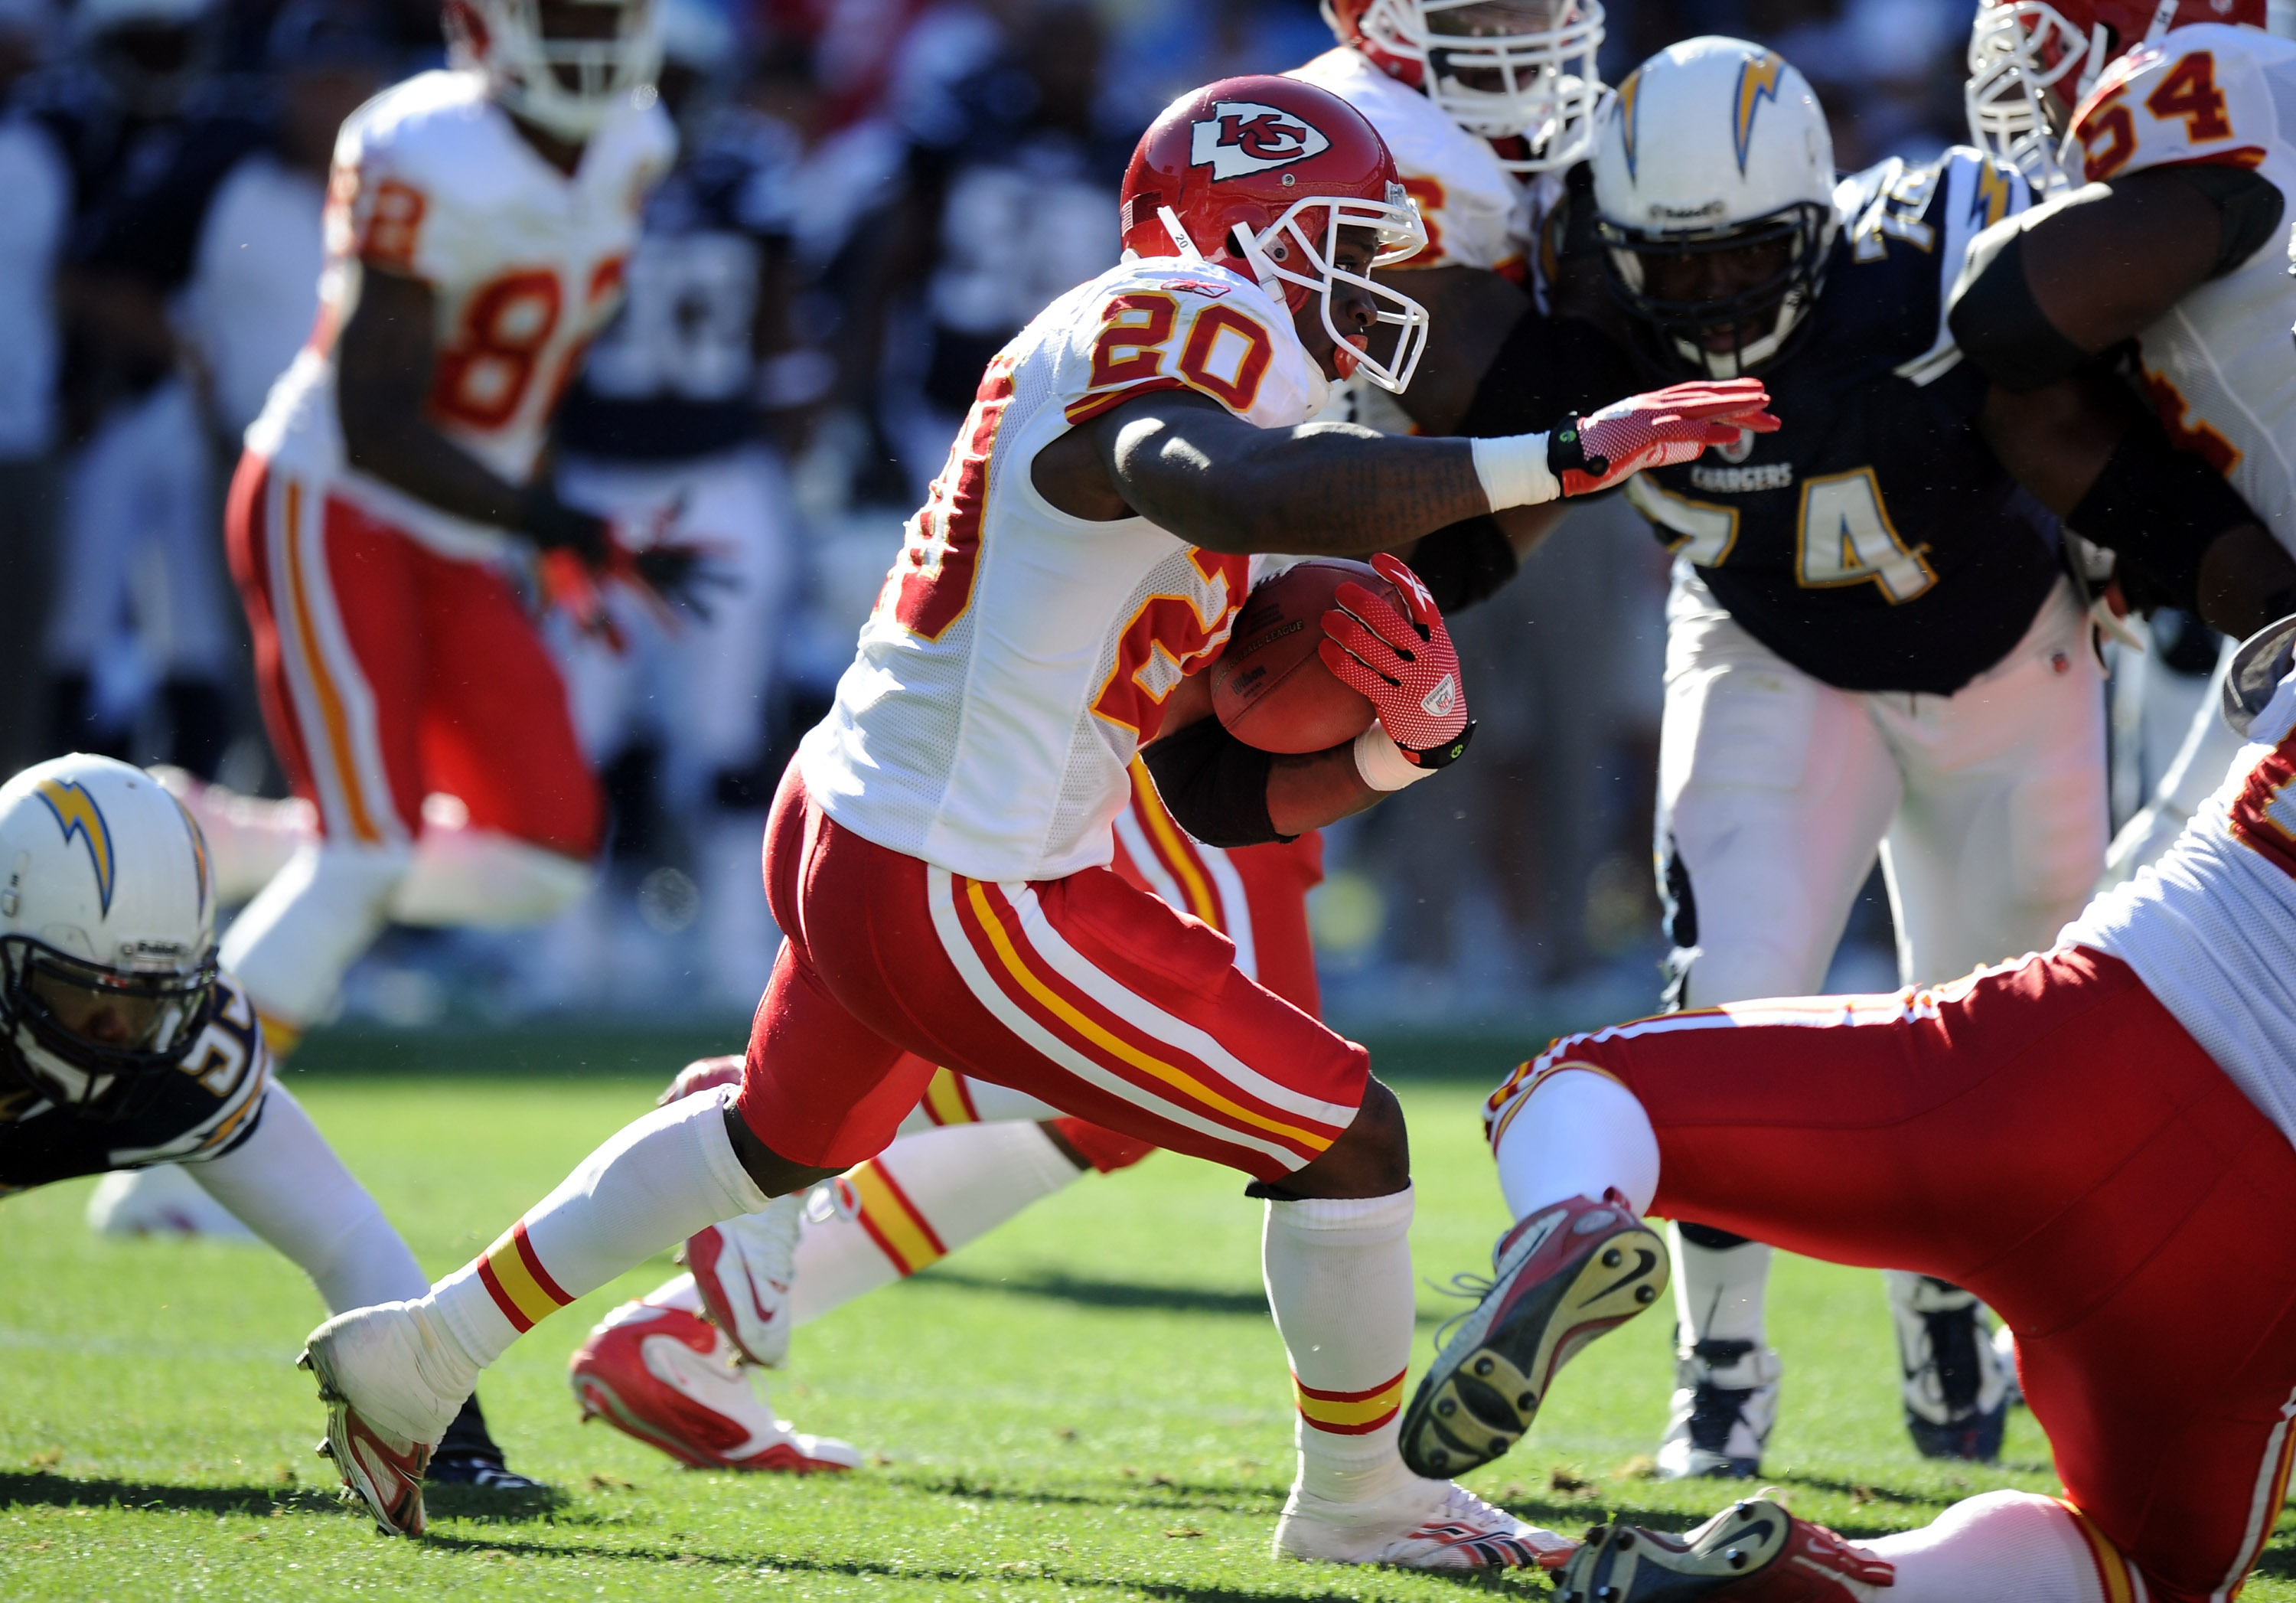 SAN DIEGO, CA - DECEMBER 12:  Thomas Jones #20 of the Kansas City Chiefs carries the ball against the San Diego Chargers at Qualcomm Stadium on December 12, 2010 in San Diego, California.  (Photo by Harry How/Getty Images)